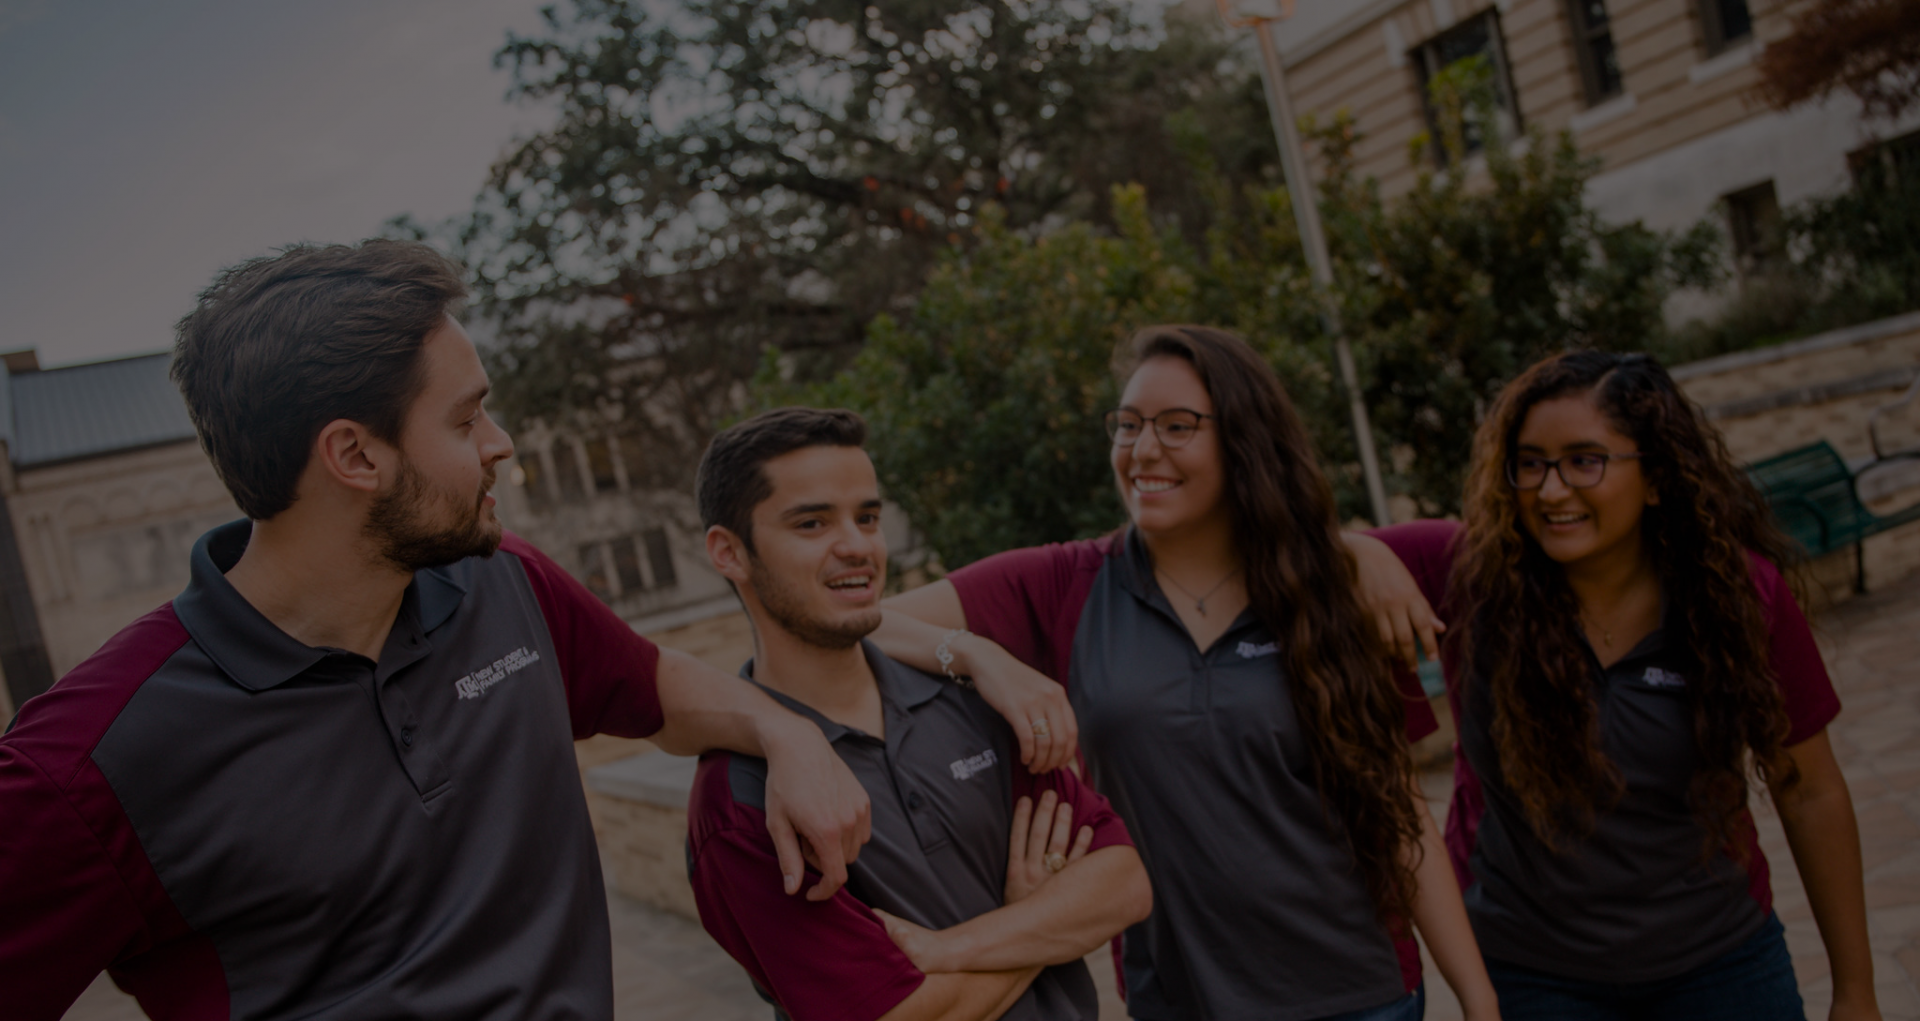 Four student leaders wearing gray and maroon polos stand outside on campus. The photo has a dark gray color overlay.